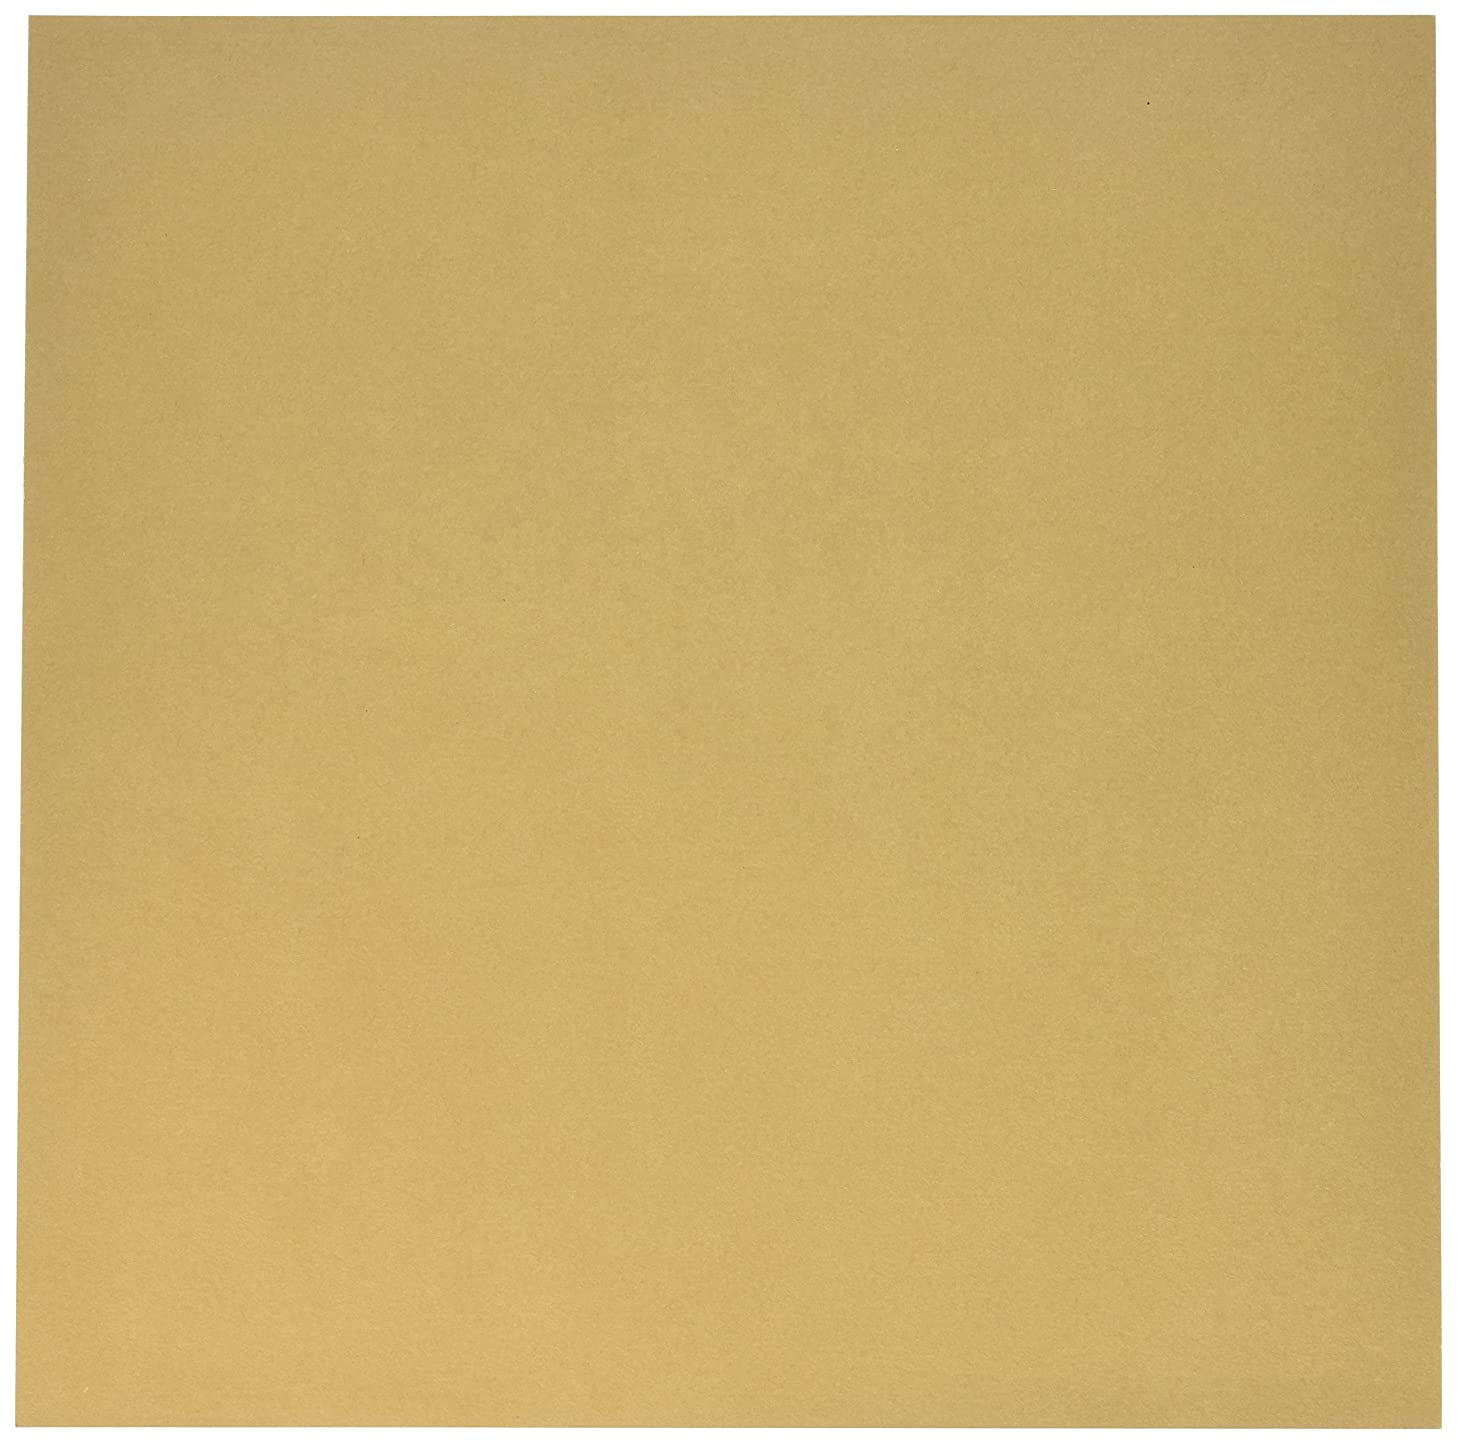 American Crafts 27109089 Smooth Cardstock 12